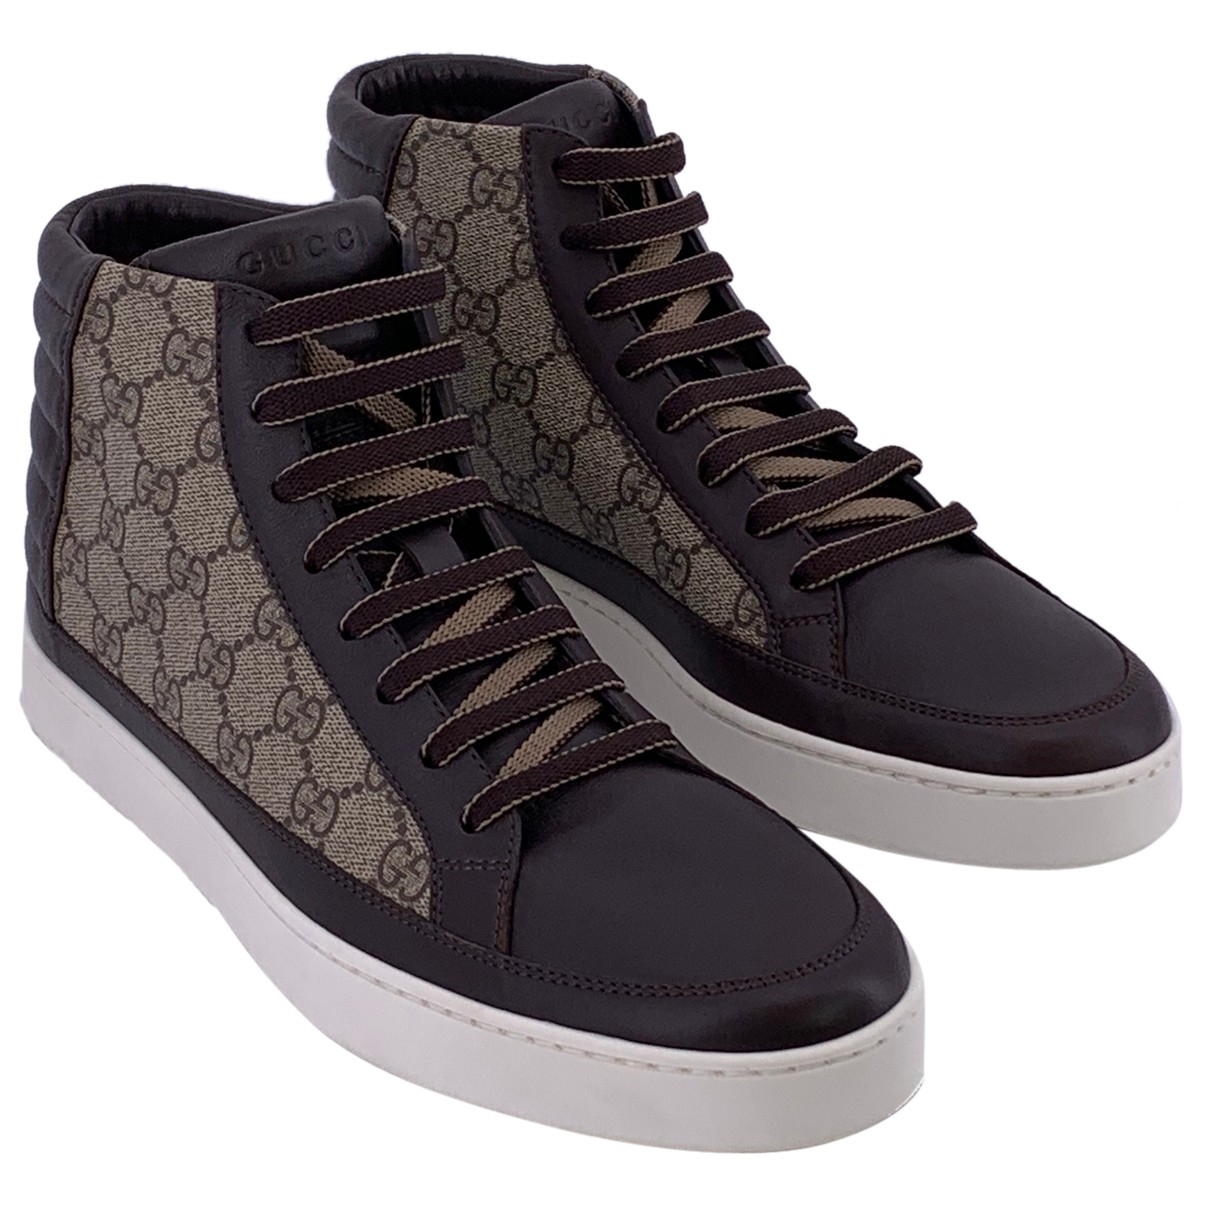 Gucci N Brown Leather Trainers for Men 9 UK